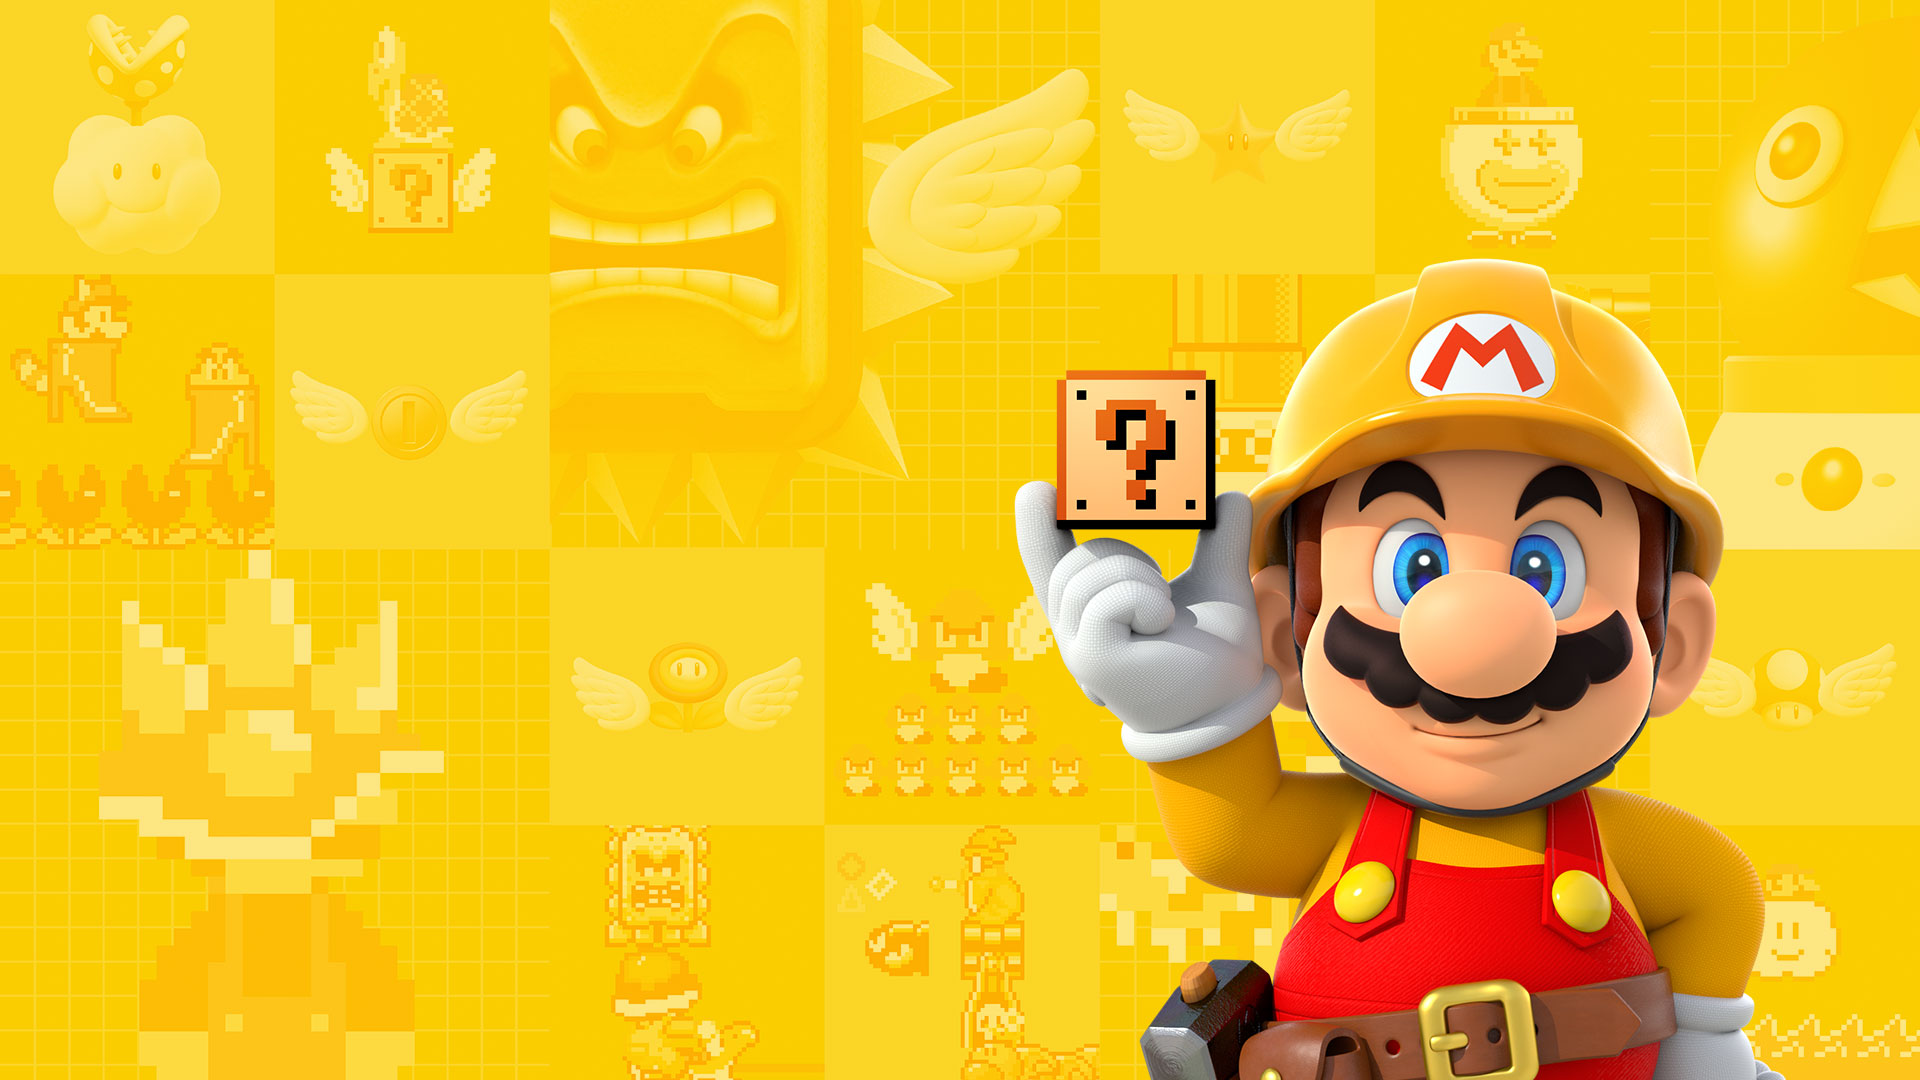 Super Mario Maker Wallpaper HD